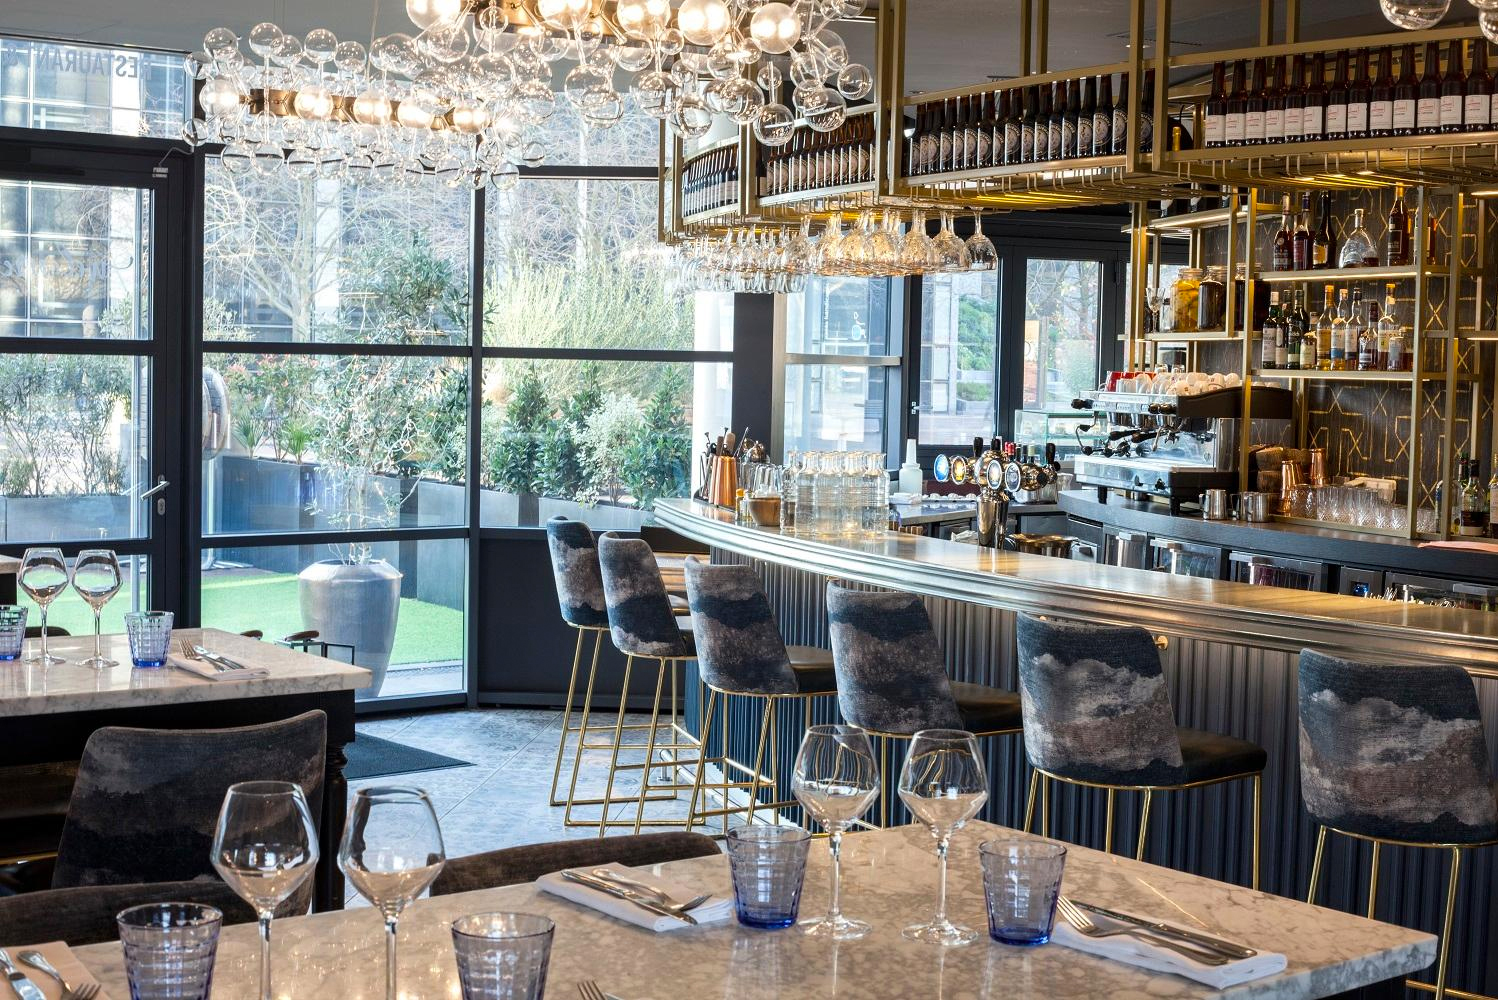 Virserius Studio completed the second phase of the redesign of the Renaissance Paris La Défense Hotel.